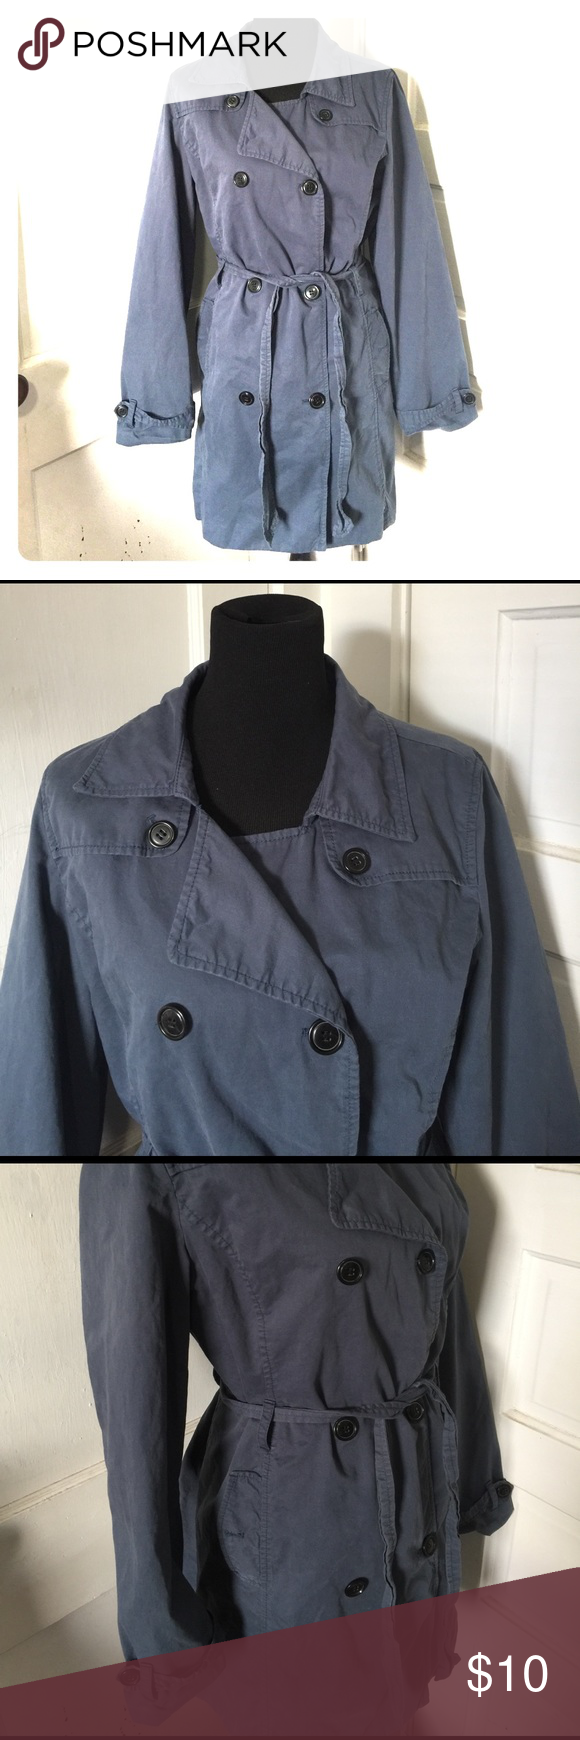 Old Navy blue trench coat Old Navy blue trench coat. Old Navy Jackets & Coats Trench Coats